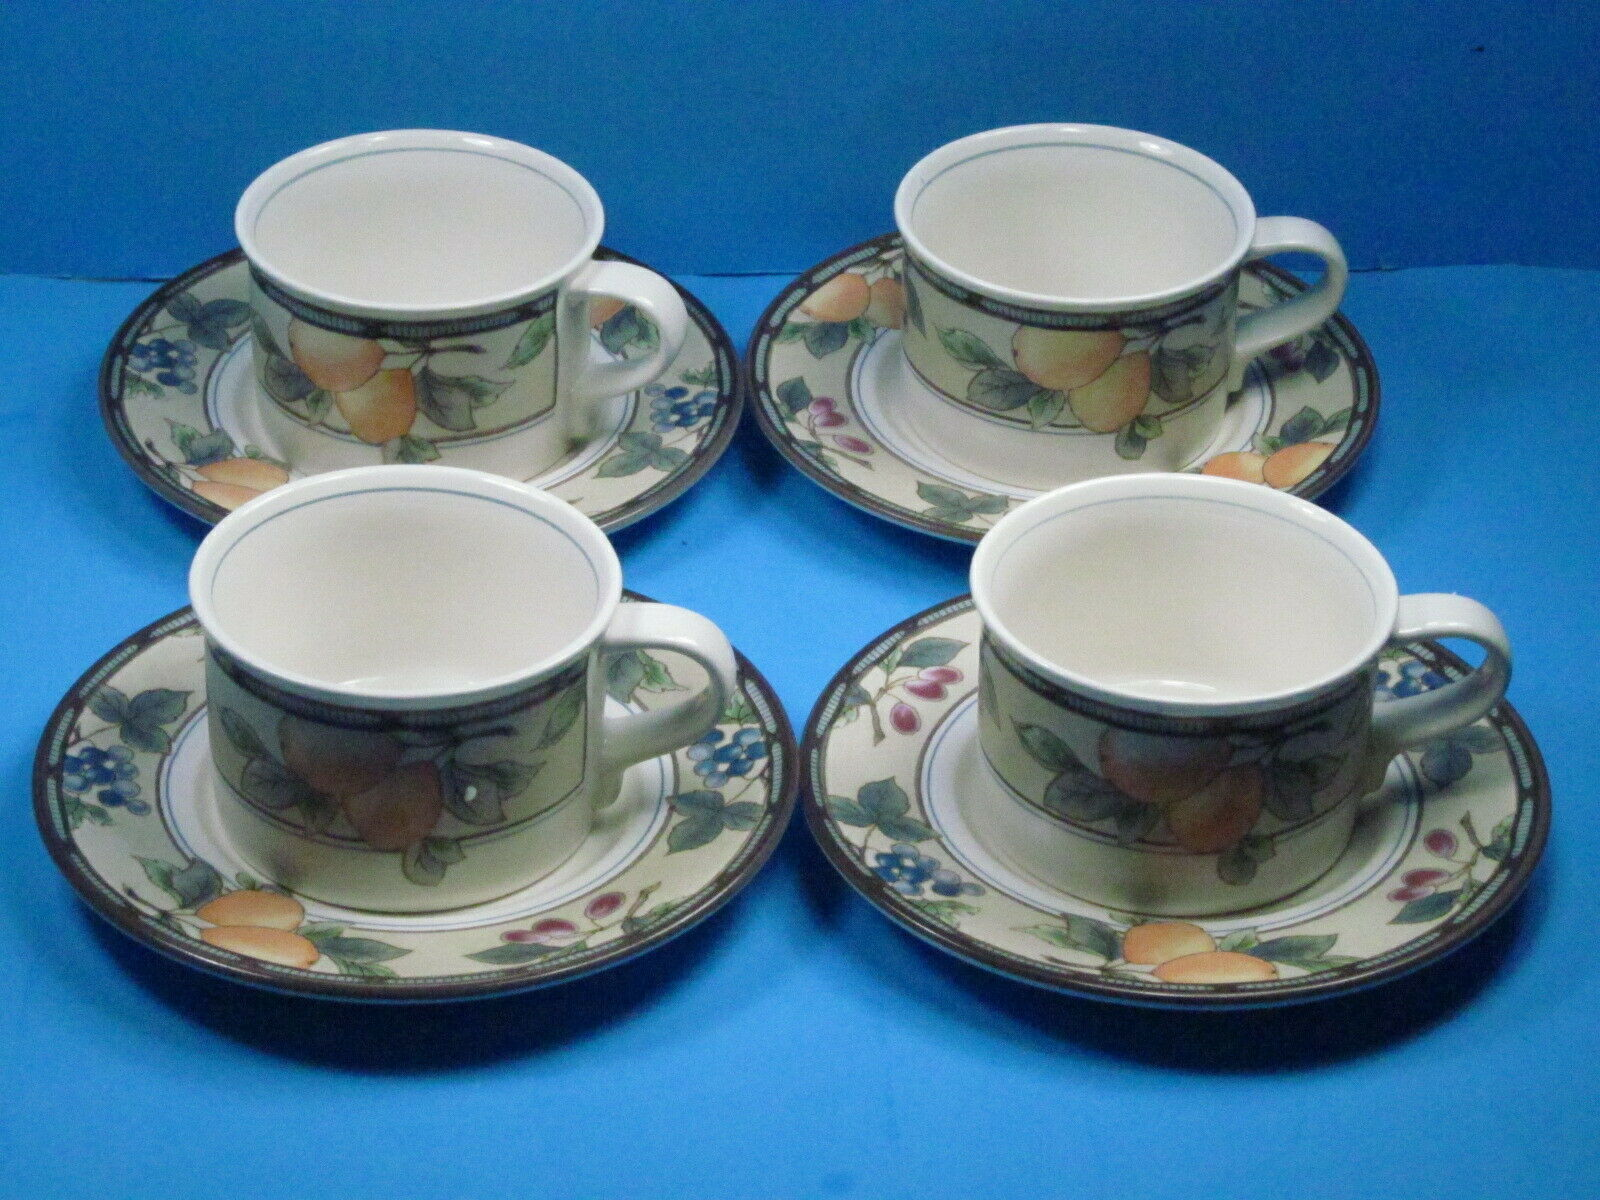 Primary image for 4 MIKASA Intaglio Garden Harvest Cups and Saucers Bundle of 4 Sets